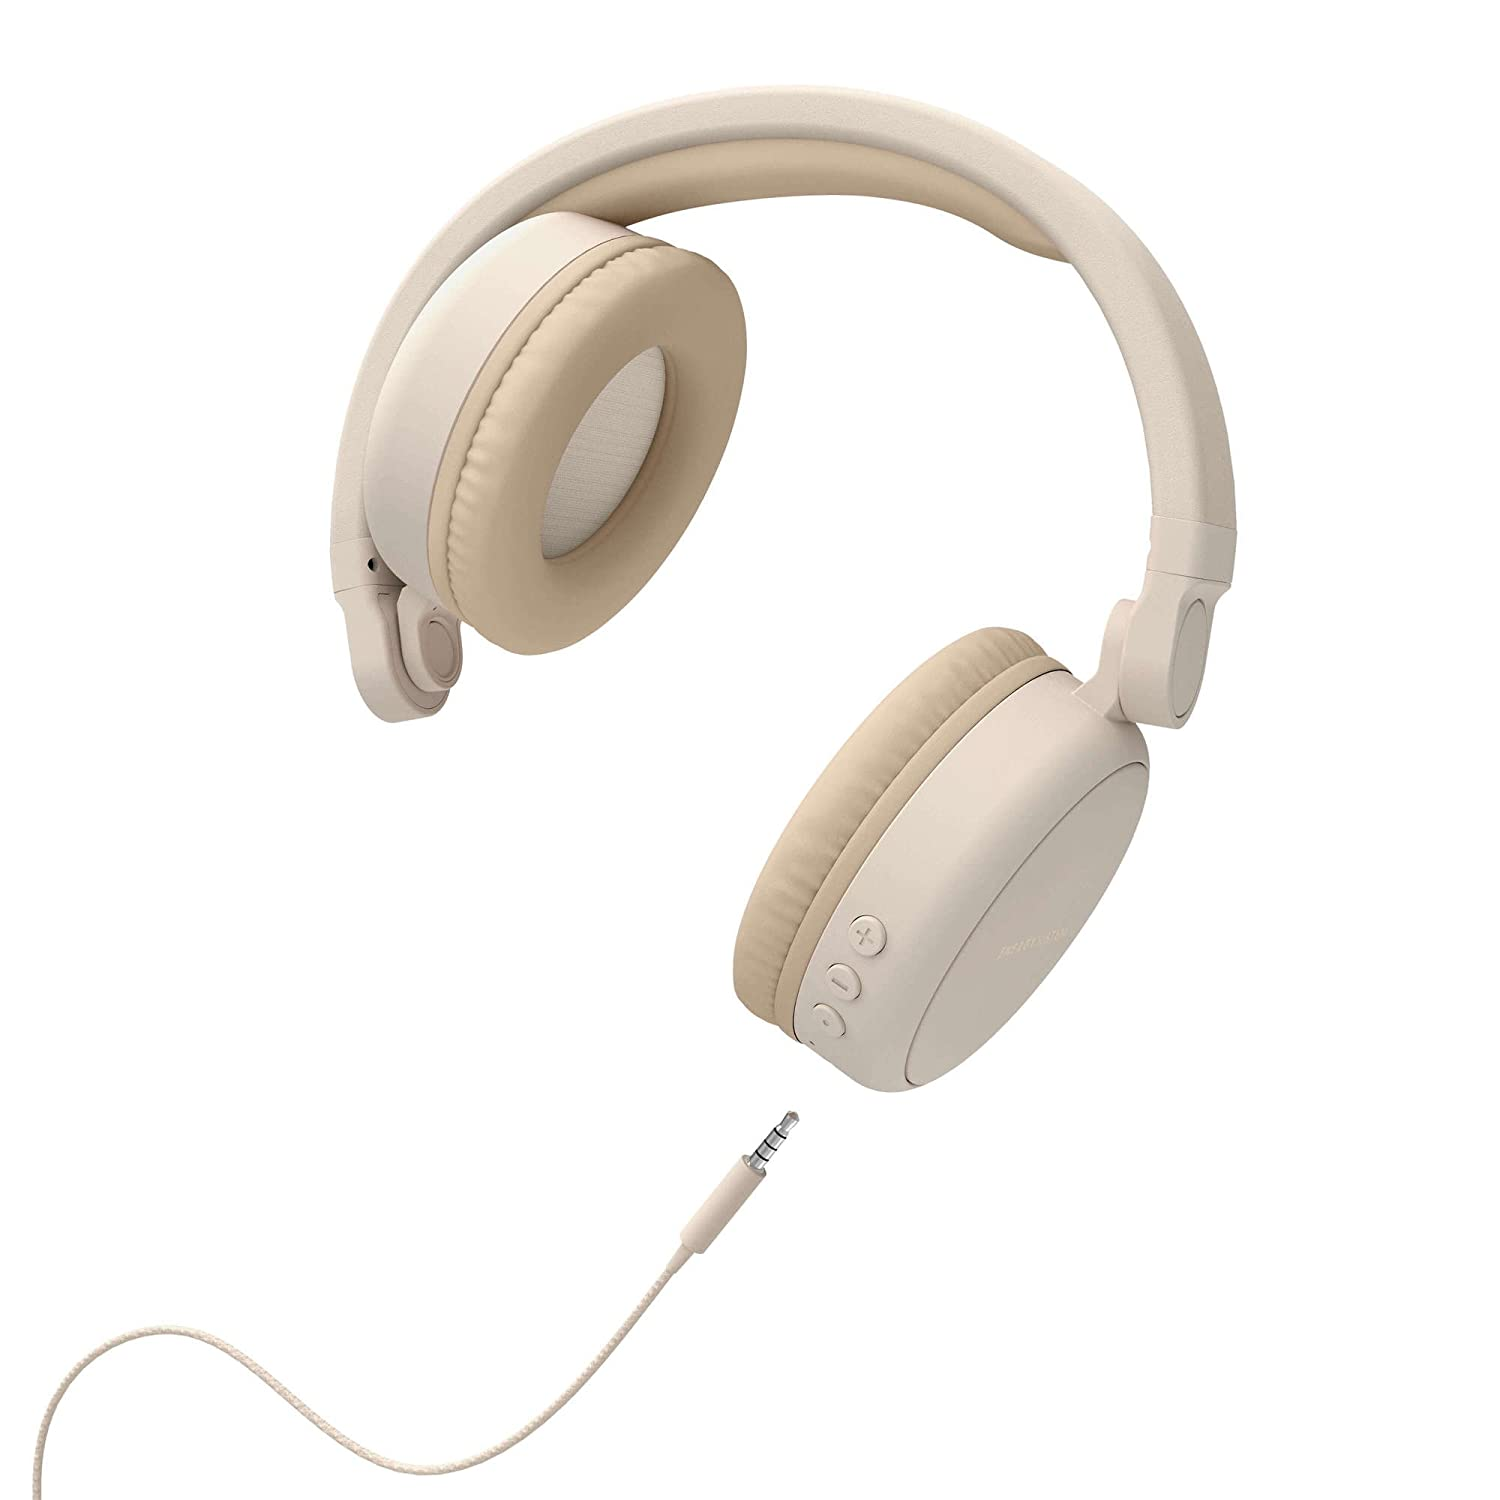 Energy Sistem Headphones 2 - Auriculares con Bluetooth (Over-Ear, Audio-In, Long Battery Life, 180 Plegable) Beige: Energy-Sistem: Amazon.es: Electrónica